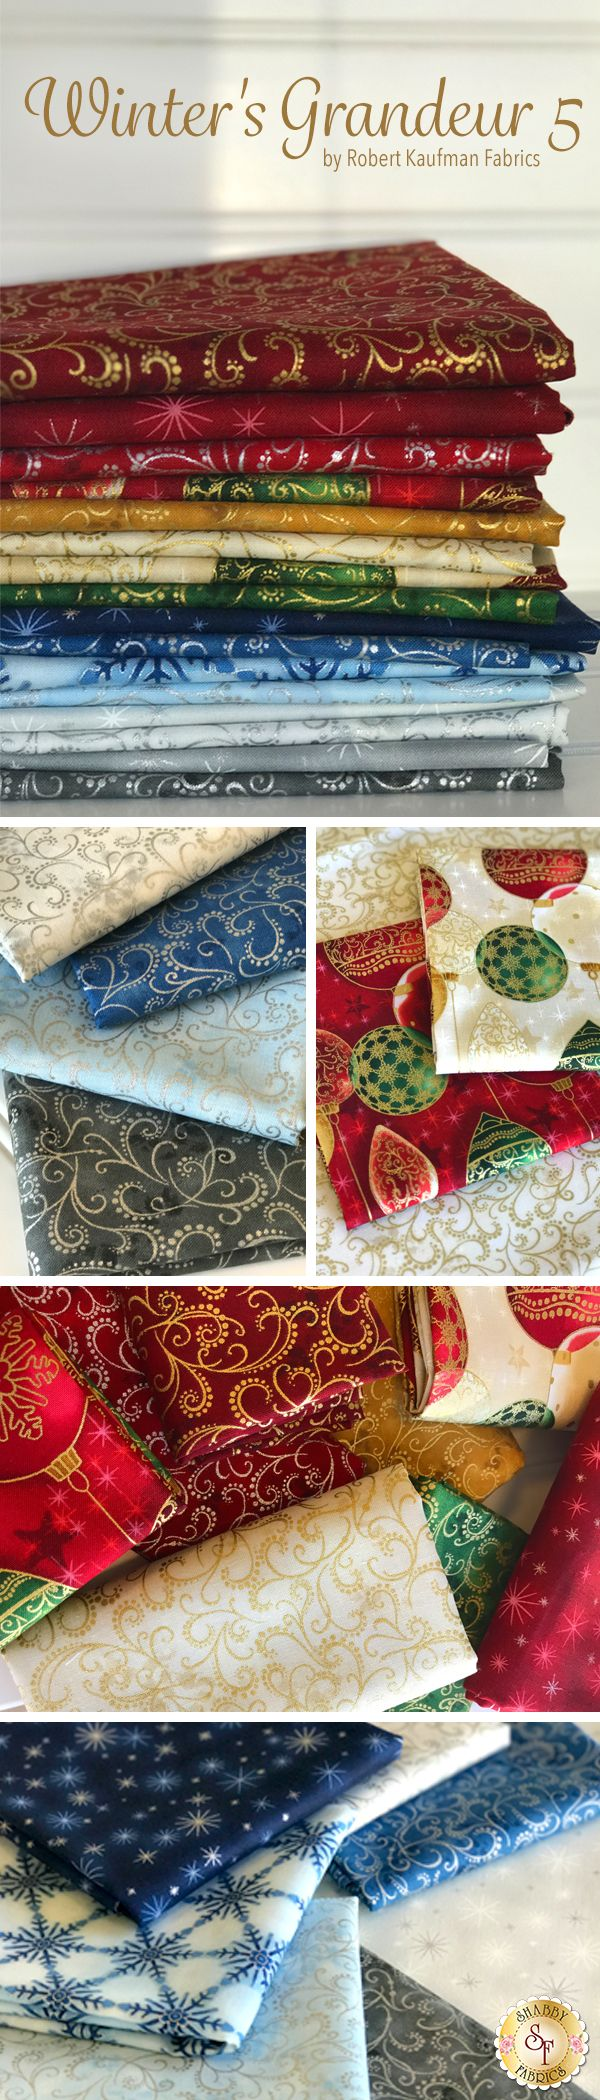 Winter's Grandeur 5 from Robert Kaufman Fabrics is a holiday fabric collection featuring metallic accents available at Shabby Fabrics